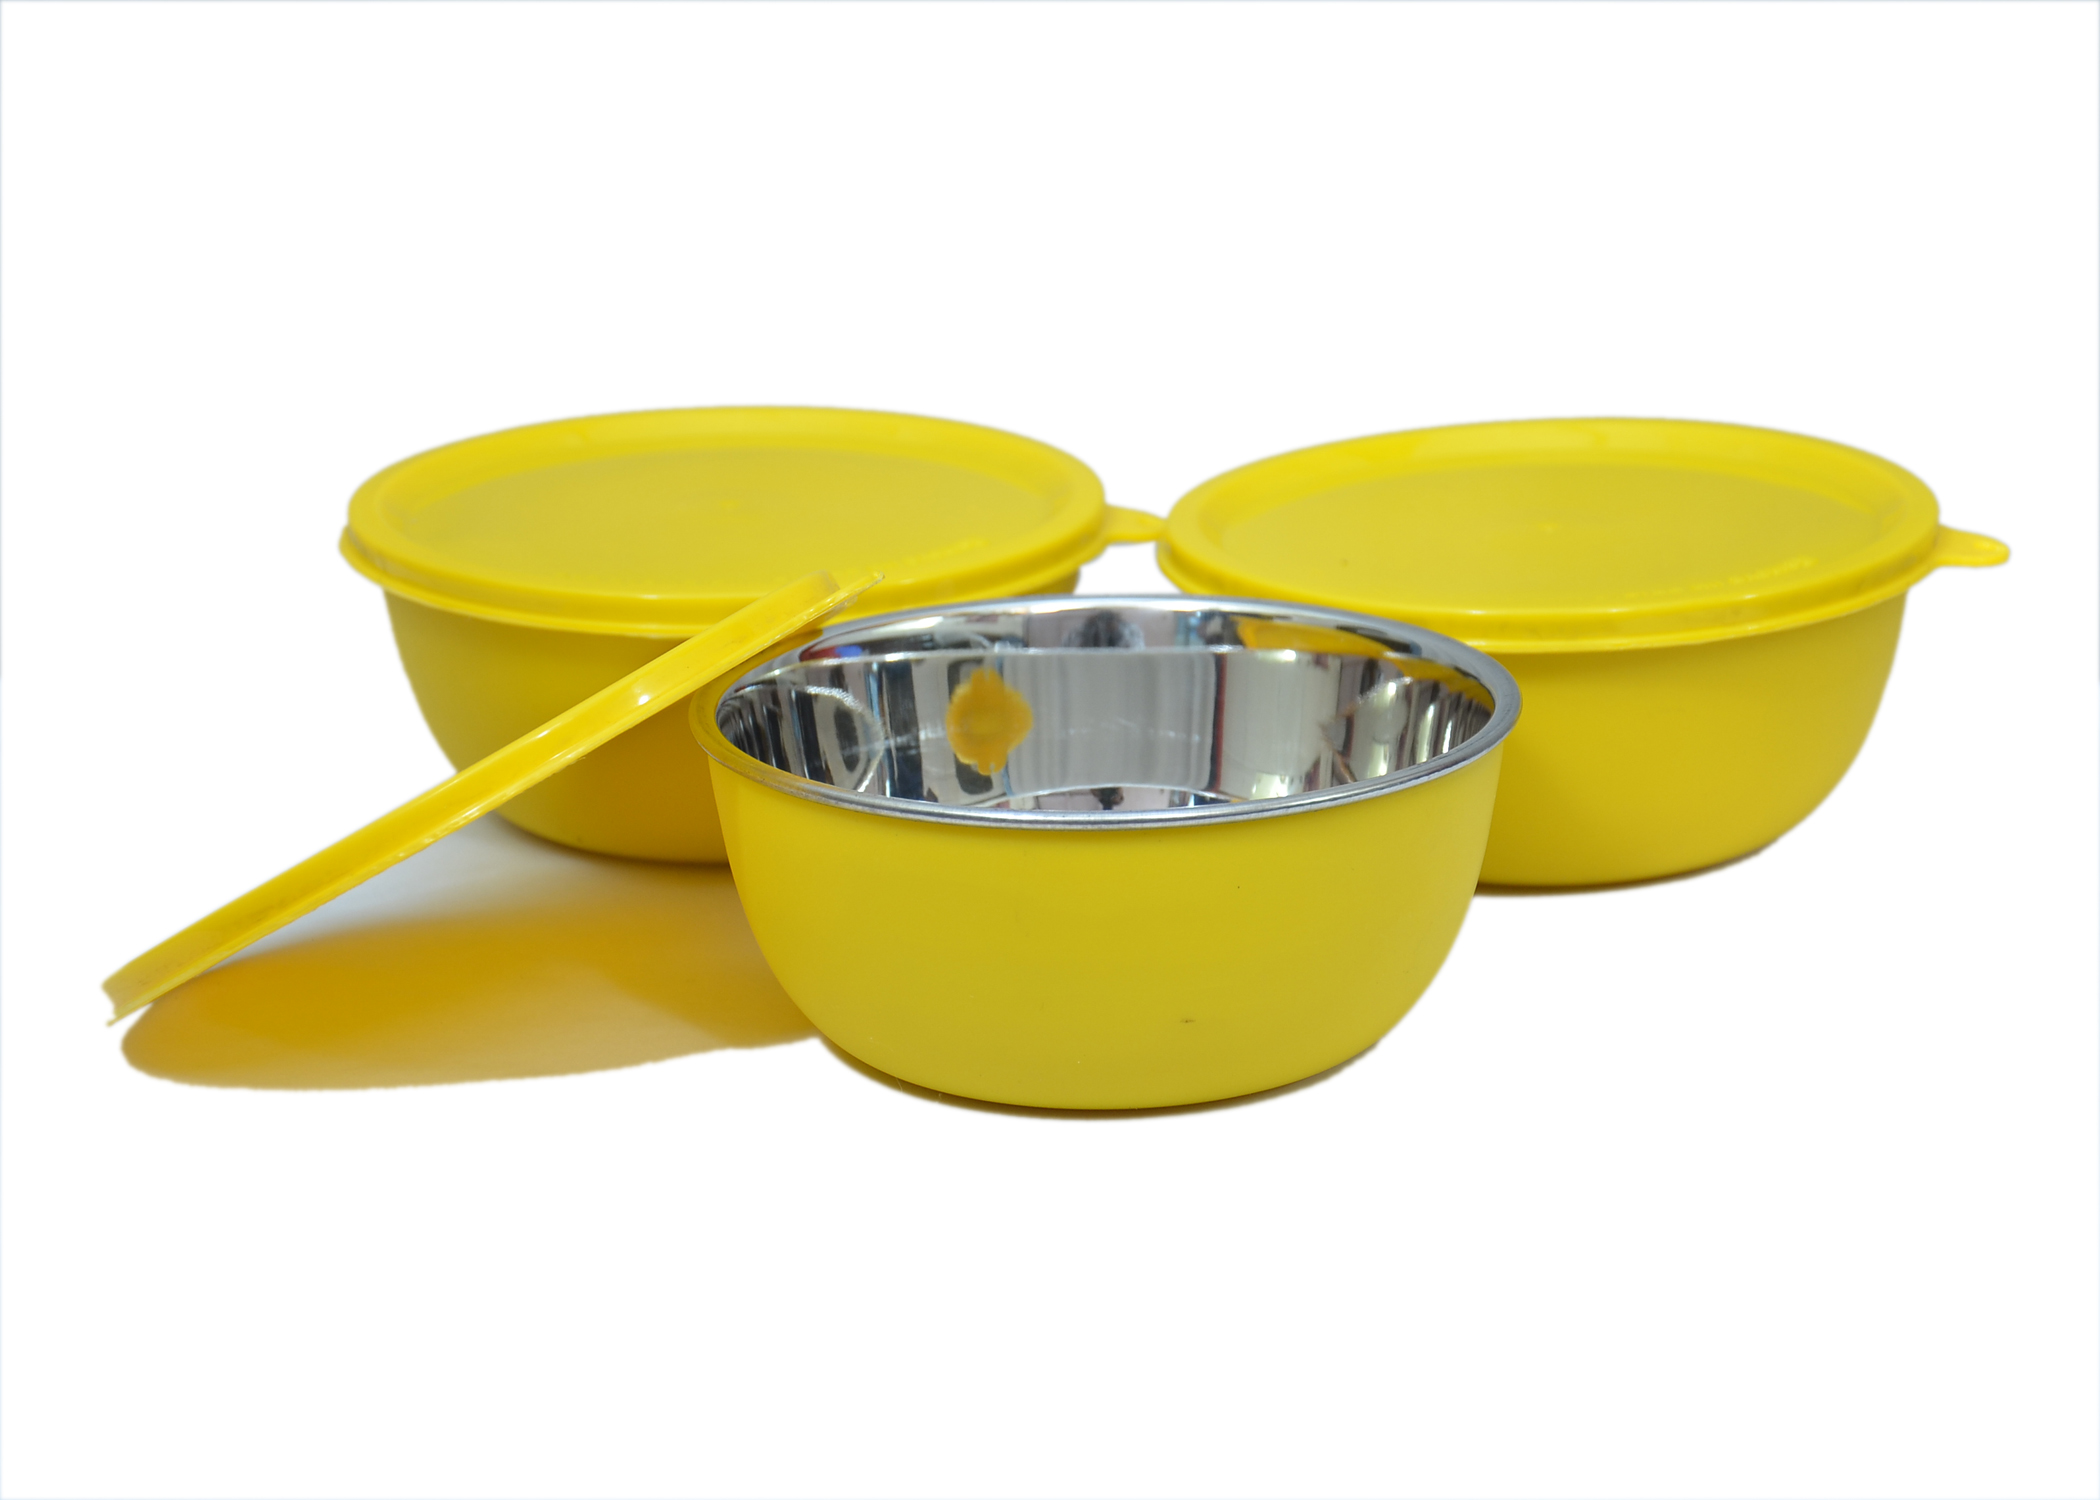 Microwave Safe Stainless Steel Plastic Coated YELLOW Bowl Set of 3  13 cm Each